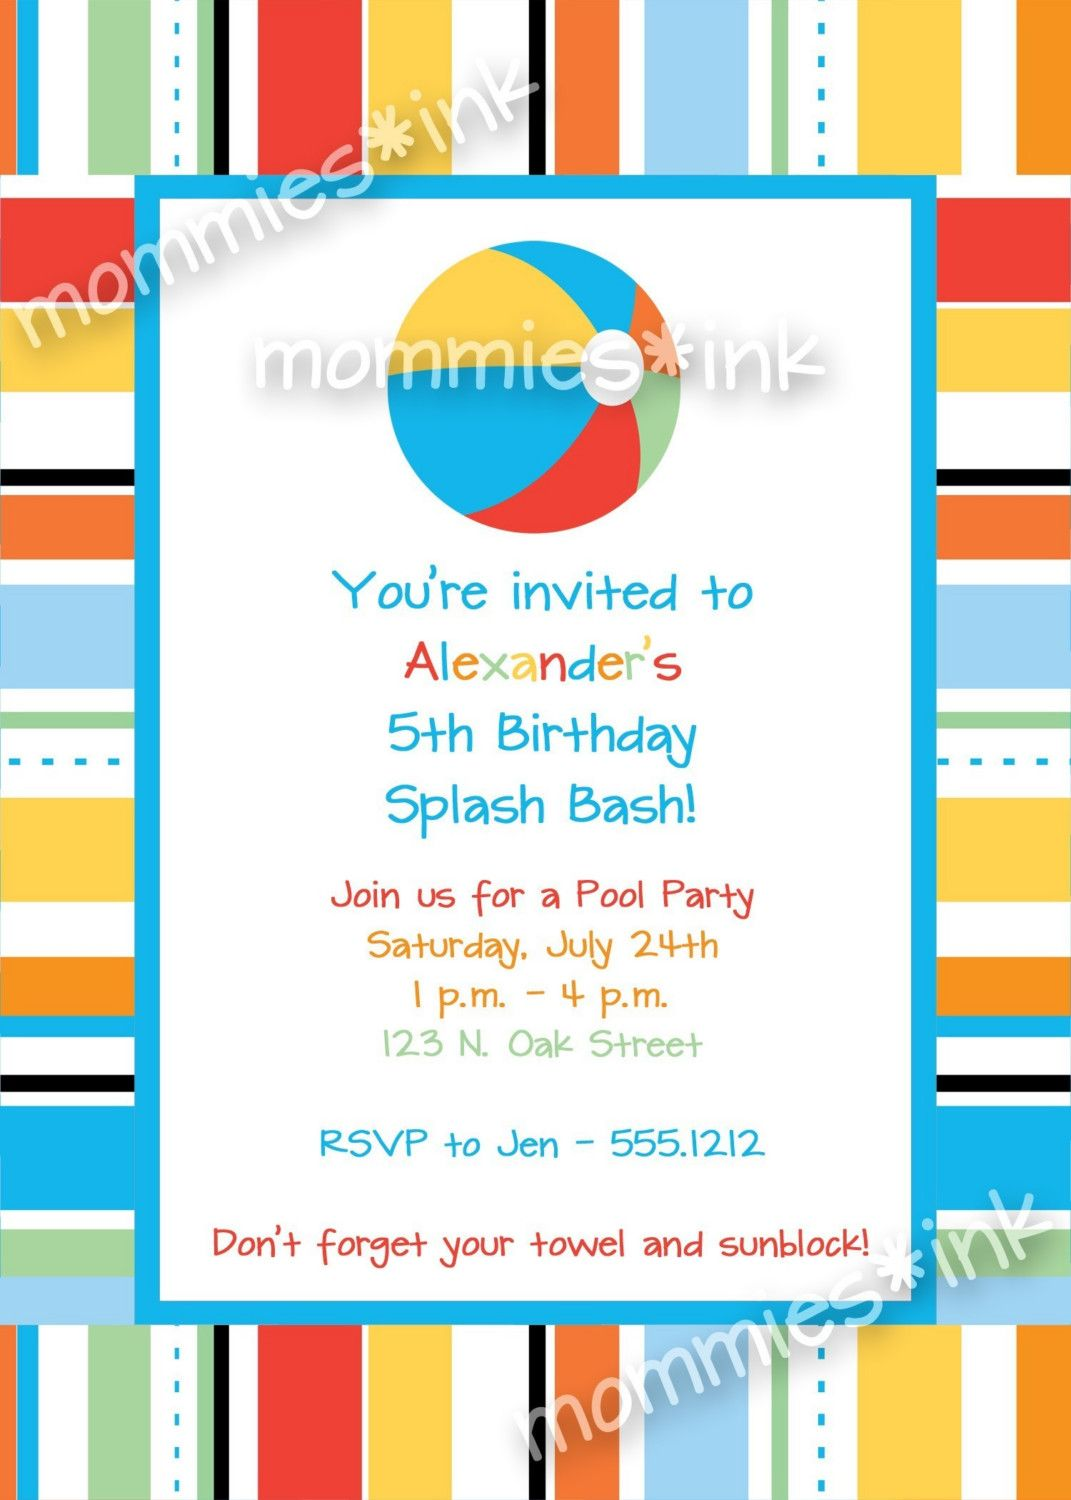 Pool Party Birthday Invitation Beach Ball by MommiesInk on Etsy ...